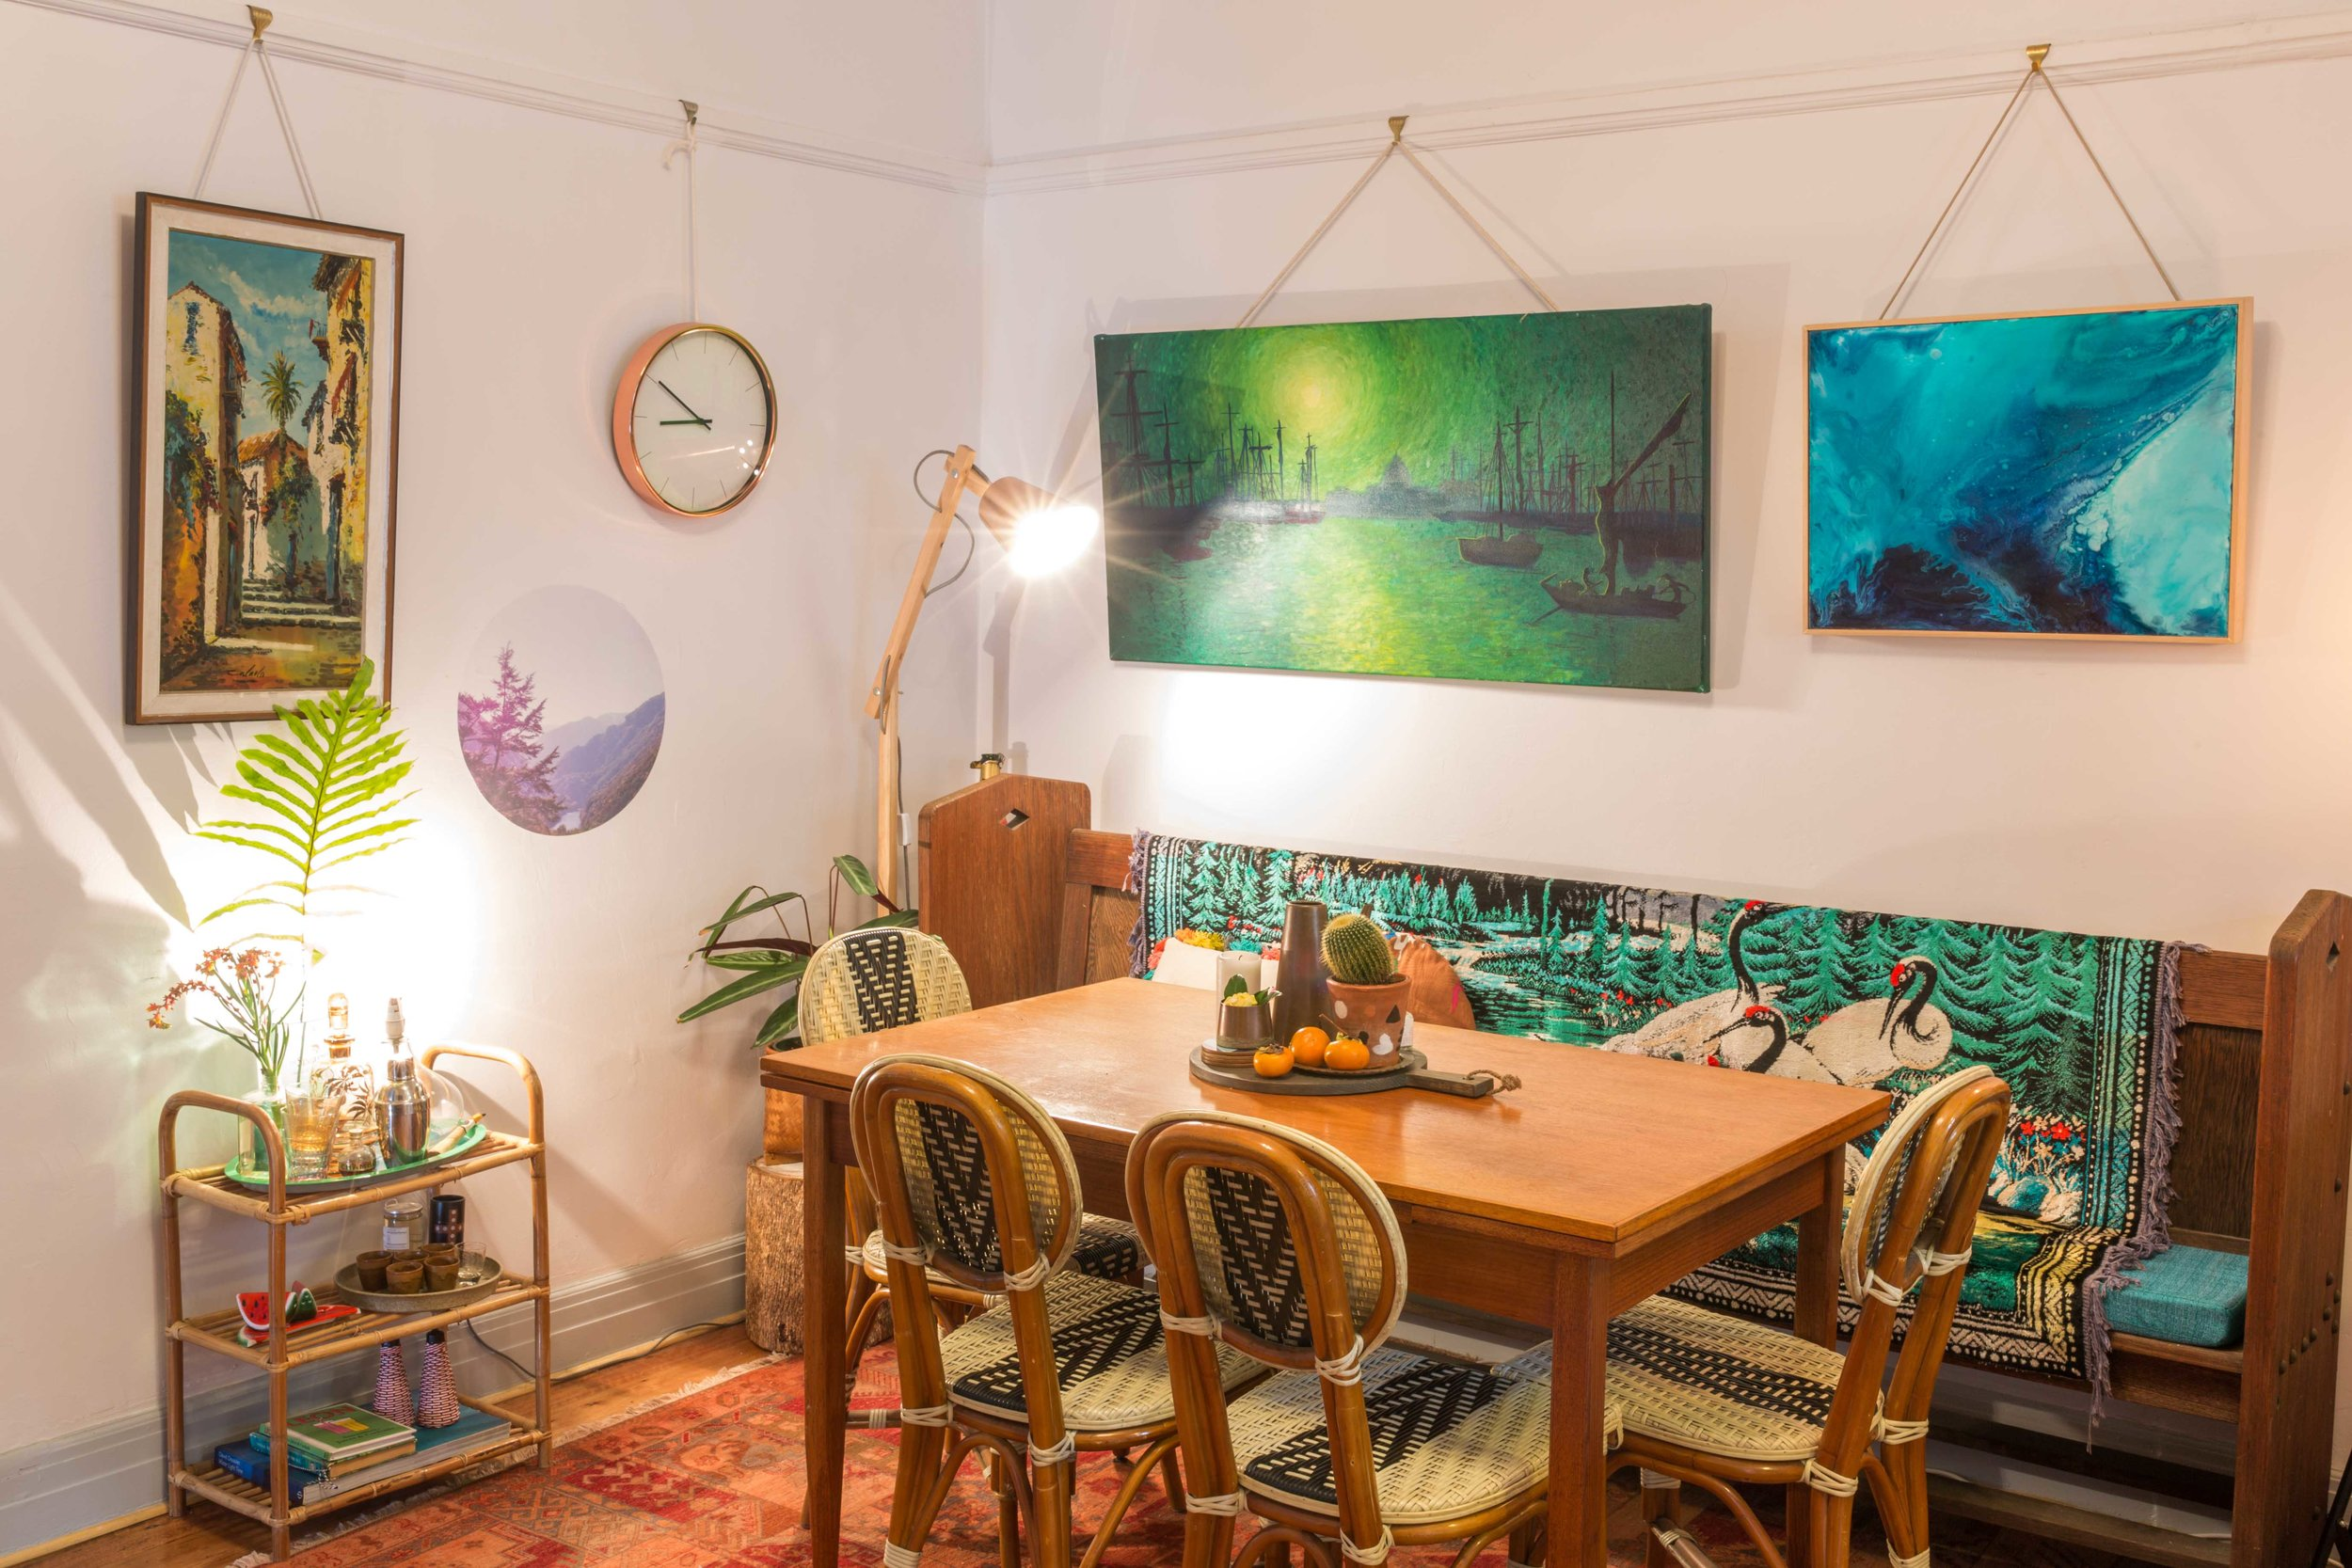 Miriam and Hamish McWilliam's home - Rented Space